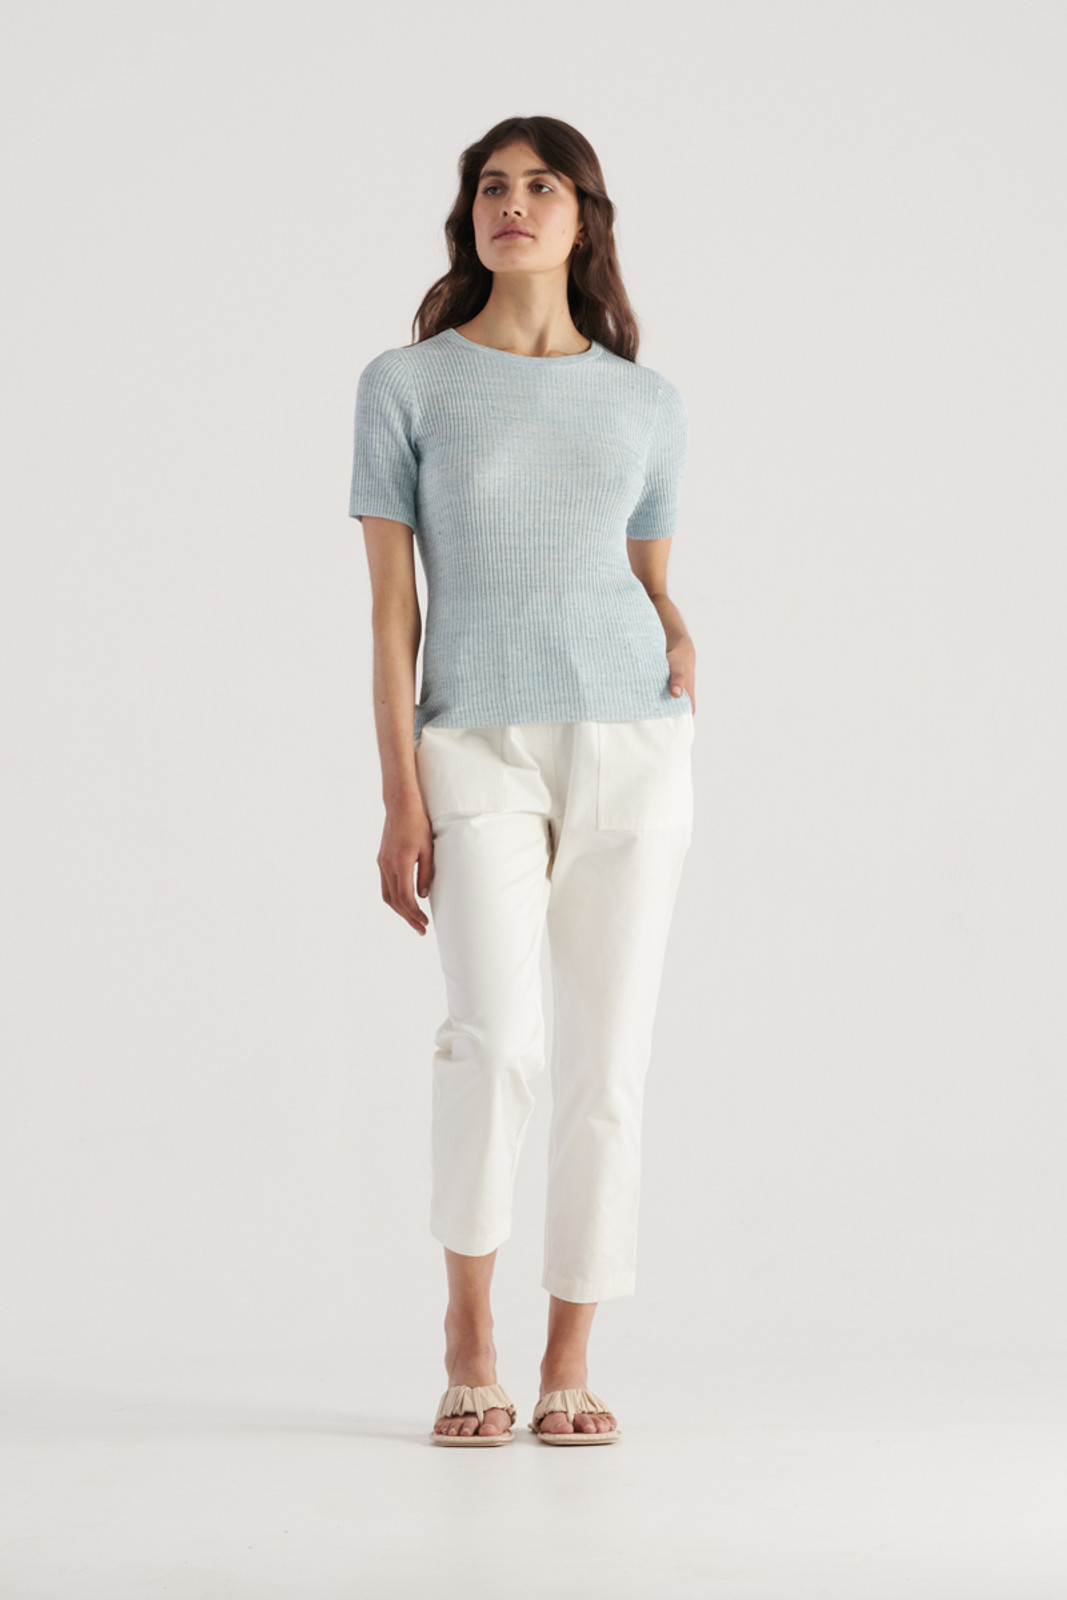 Elka Collective WomensGale Knit Top Sea Blue  1